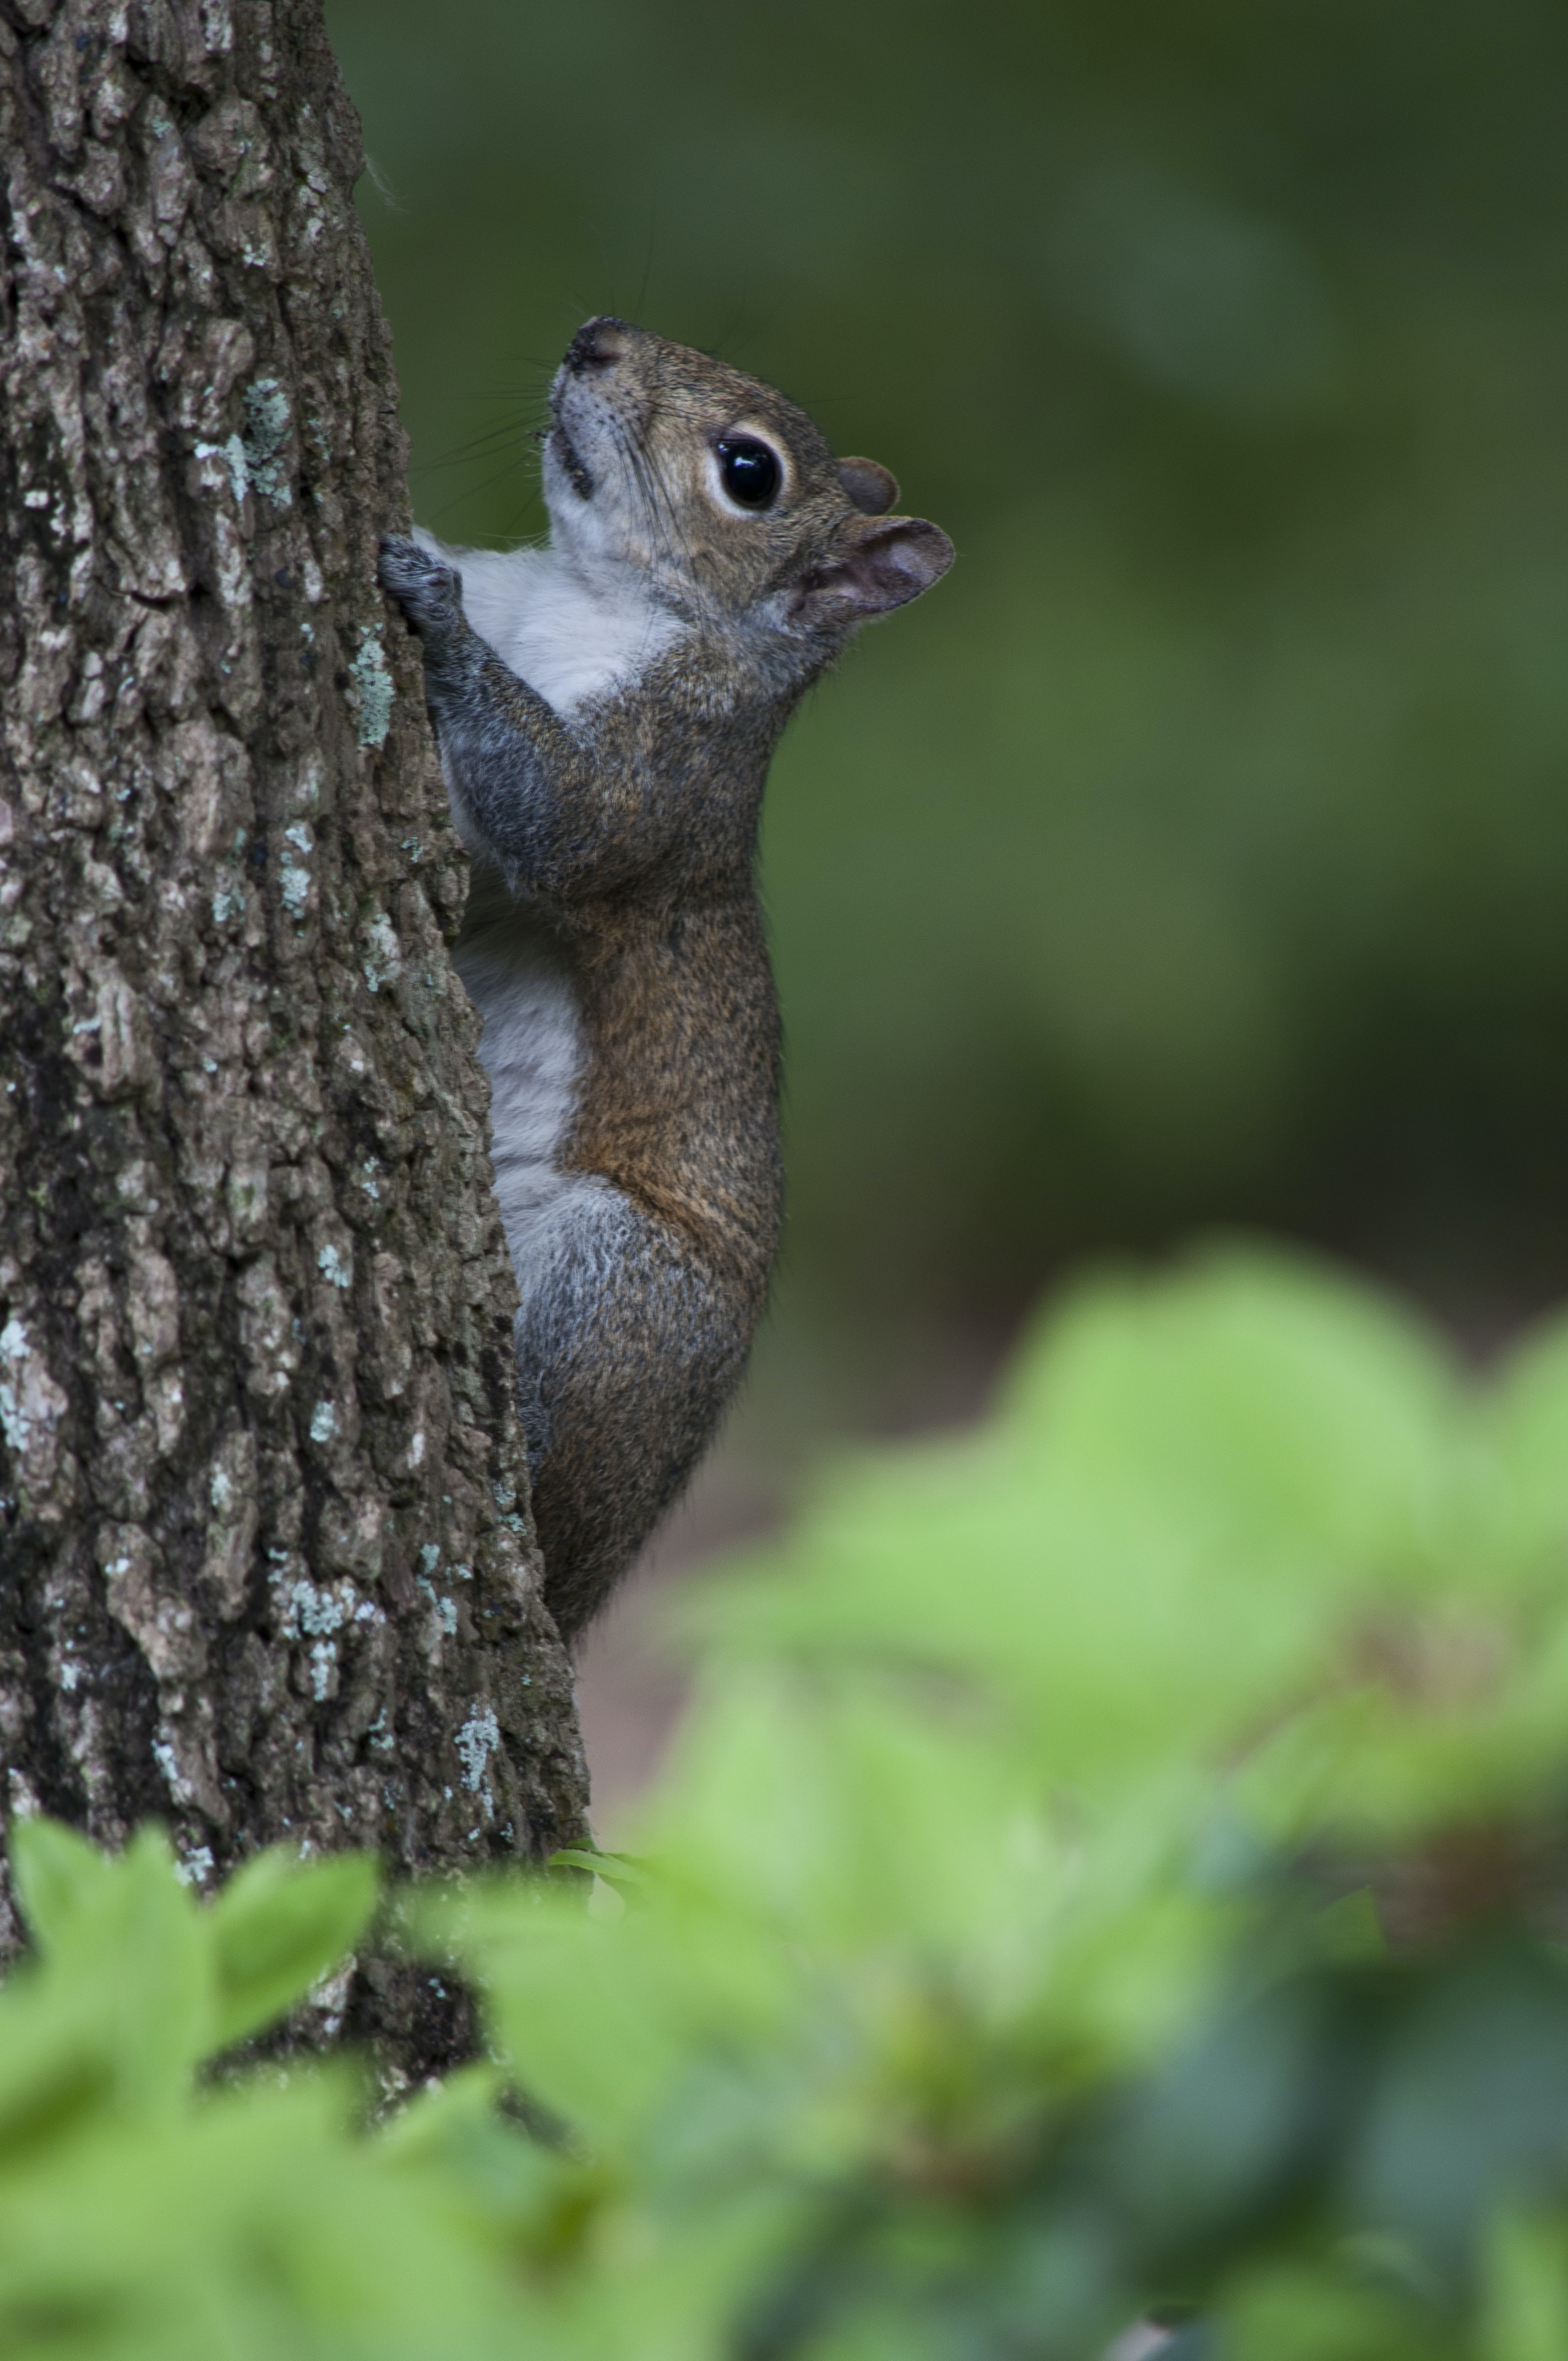 squirrel climbing on tree in selective focus photography